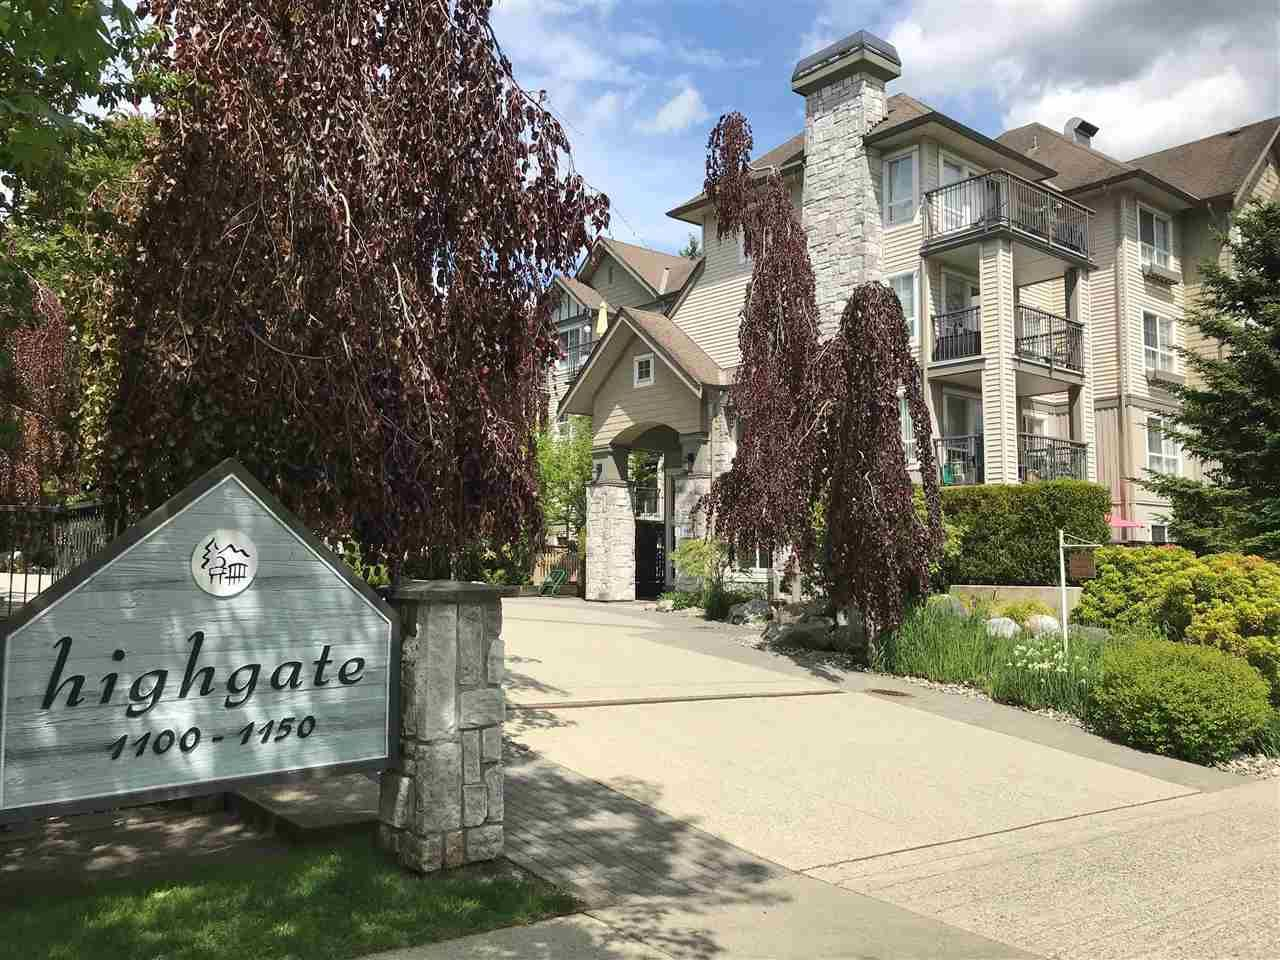 """Main Photo: 114 1150 E 29TH Street in North Vancouver: Lynn Valley Condo for sale in """"Highgate/Lynn Valley"""" : MLS®# R2581360"""